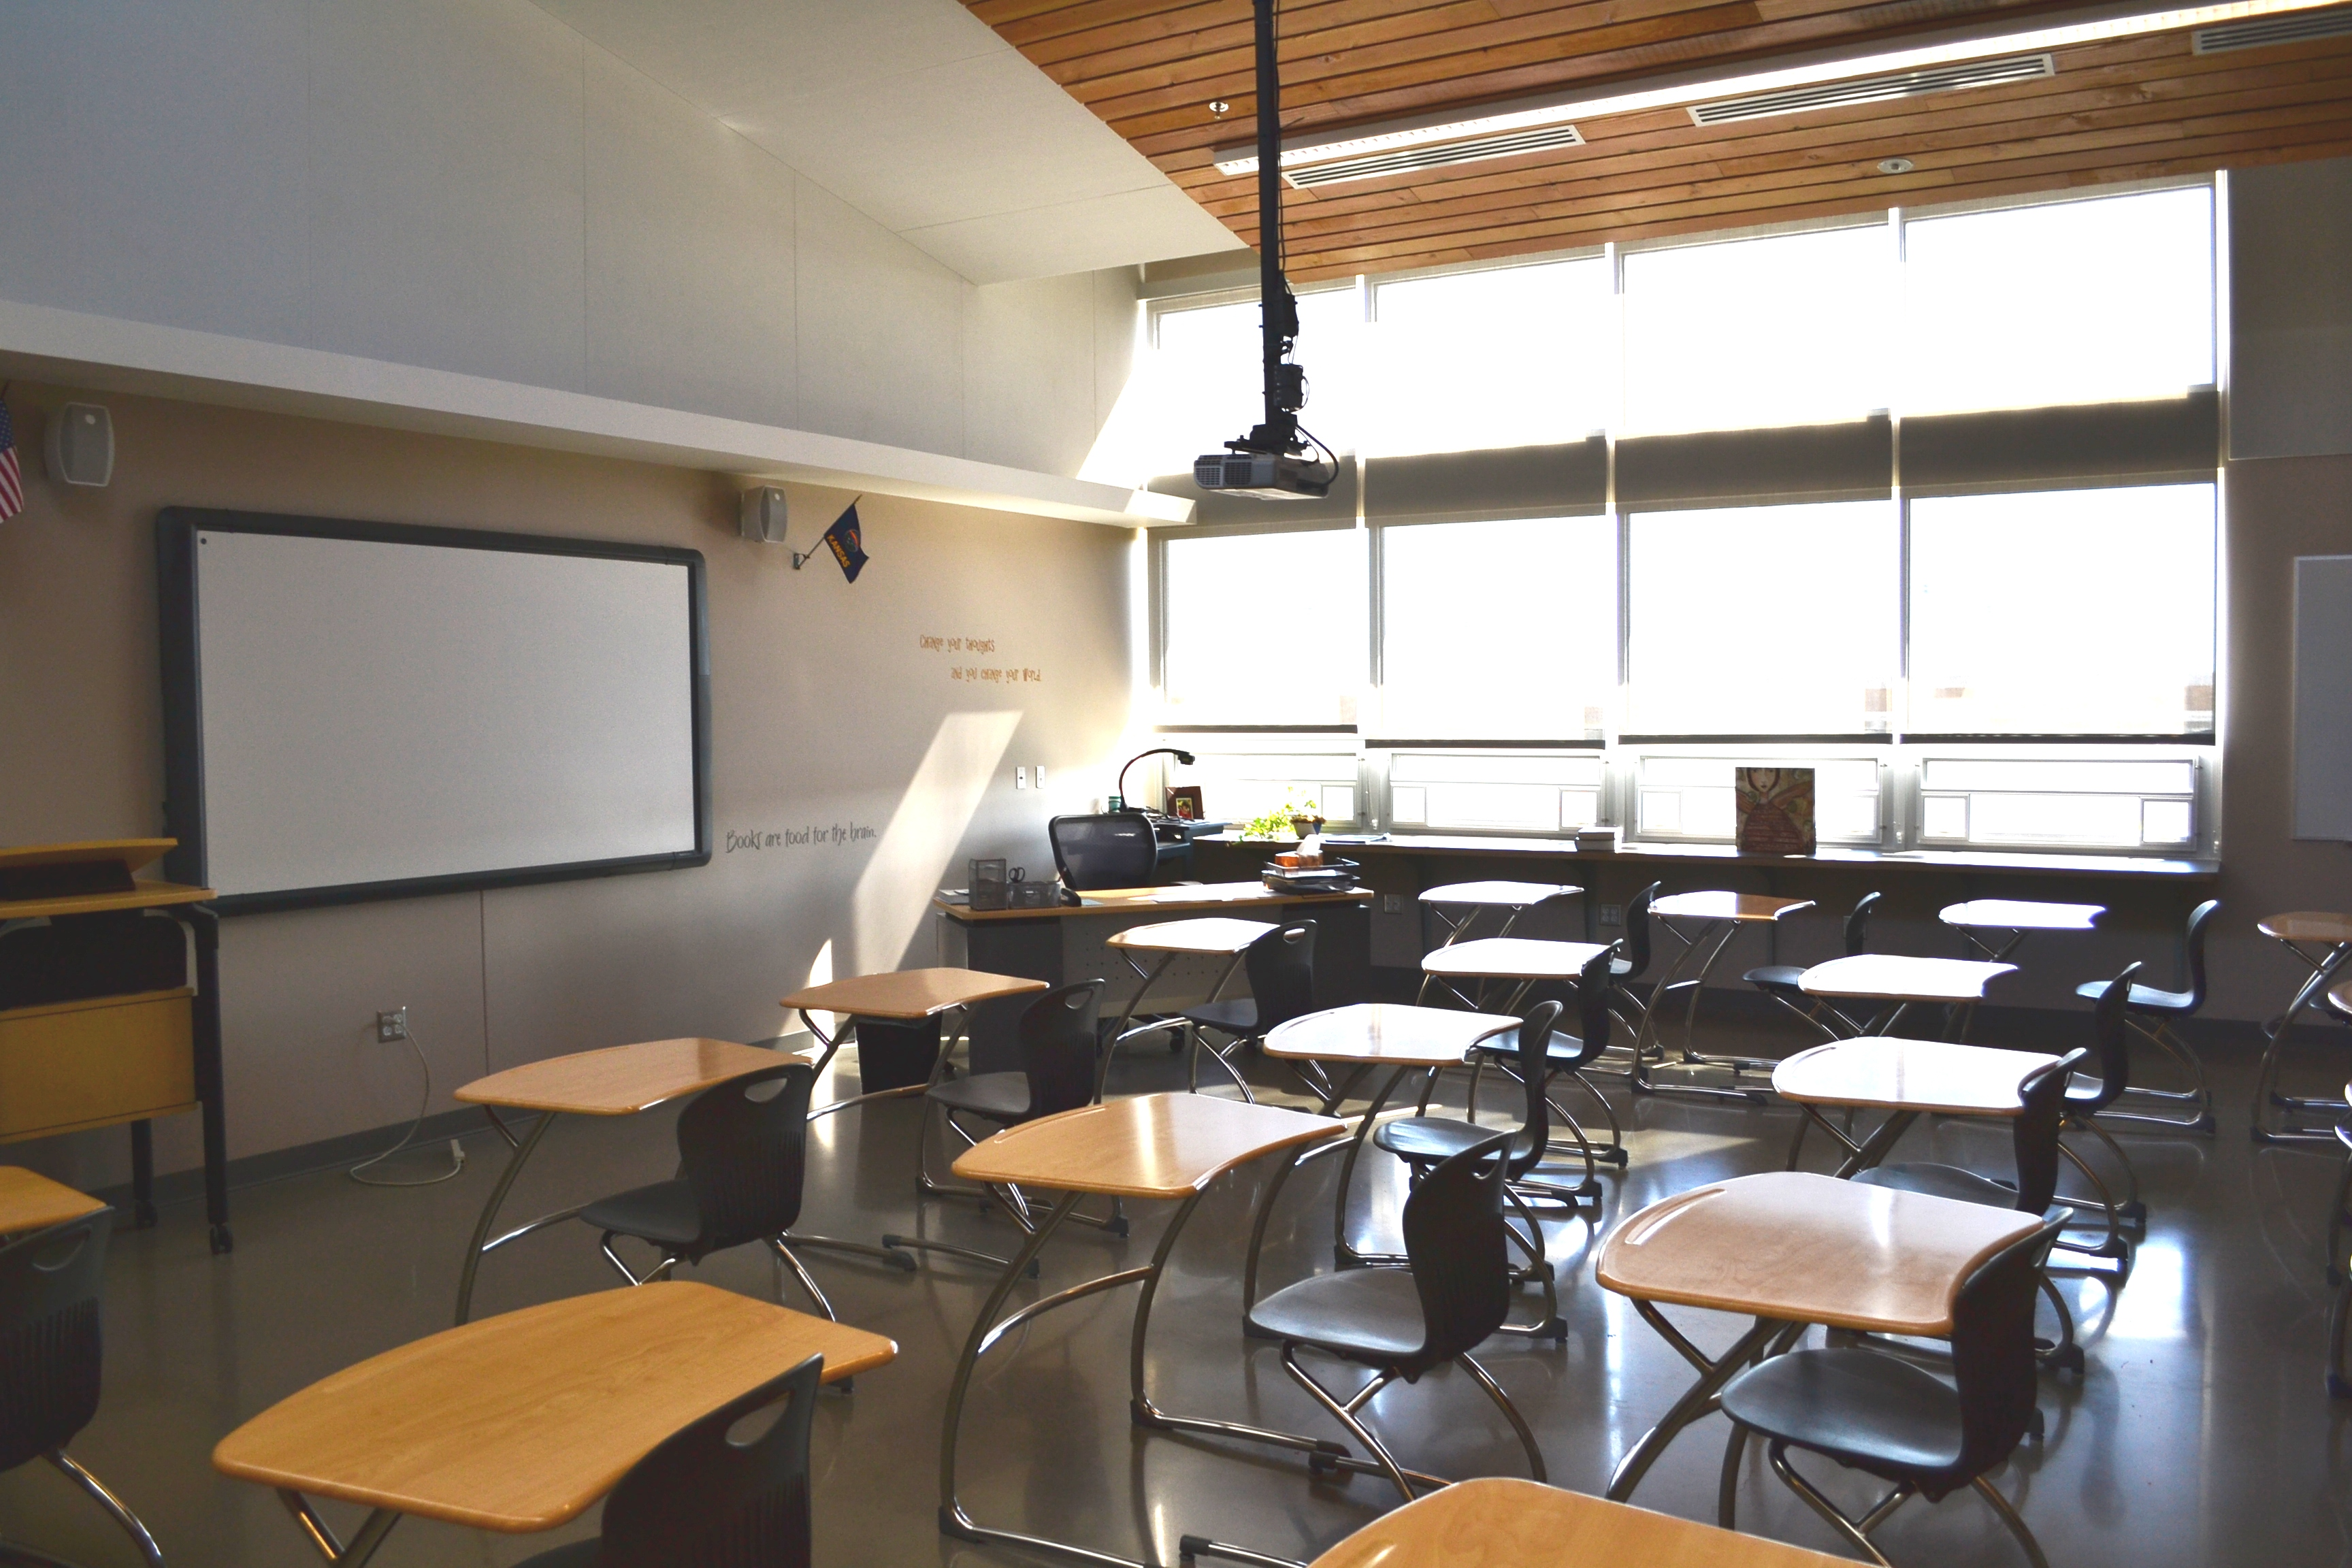 Classroom Design Ideas High School ~ Designing green schools that advance public health